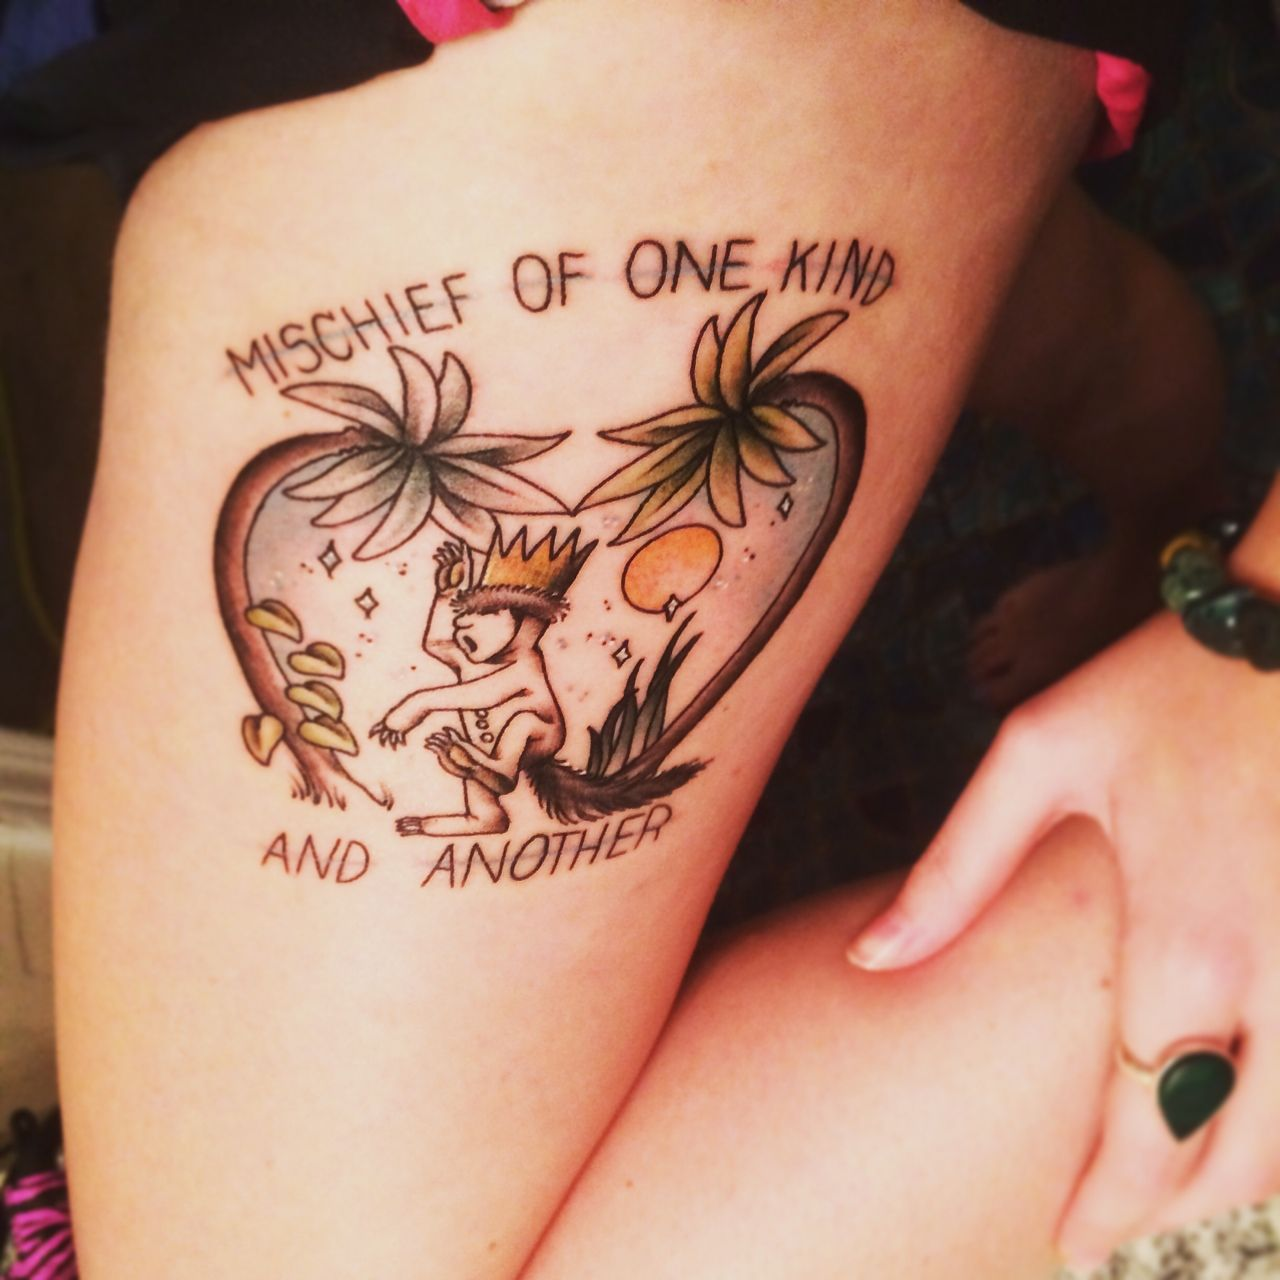 Done by the amazing Betsy Butler (Wets) at Roses and Ruins downtown shop in Charleston, SC.